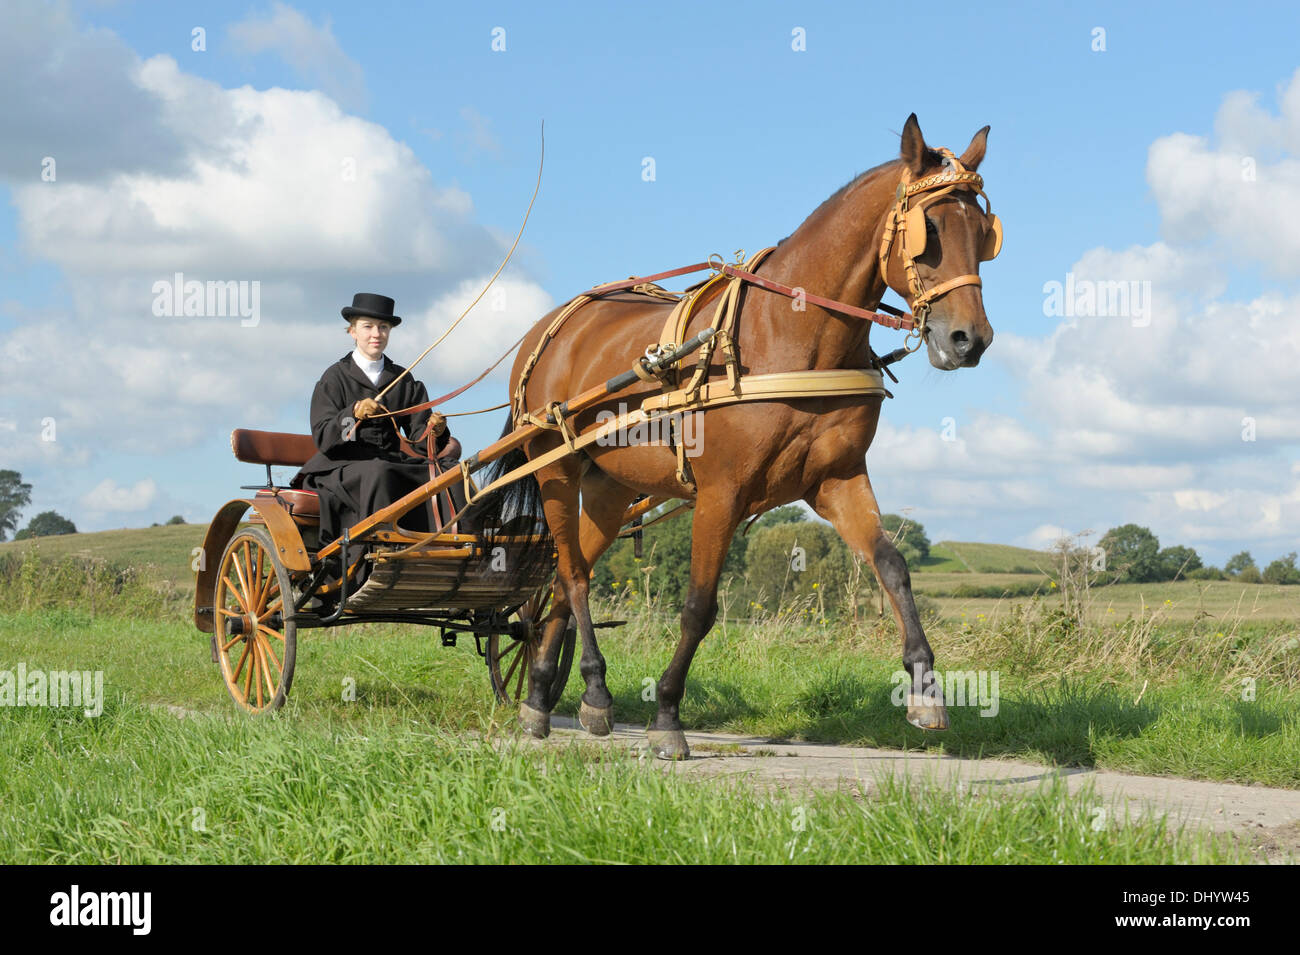 American Standardbred horse drawing a gig made 1920 in Mailand - Stock Image